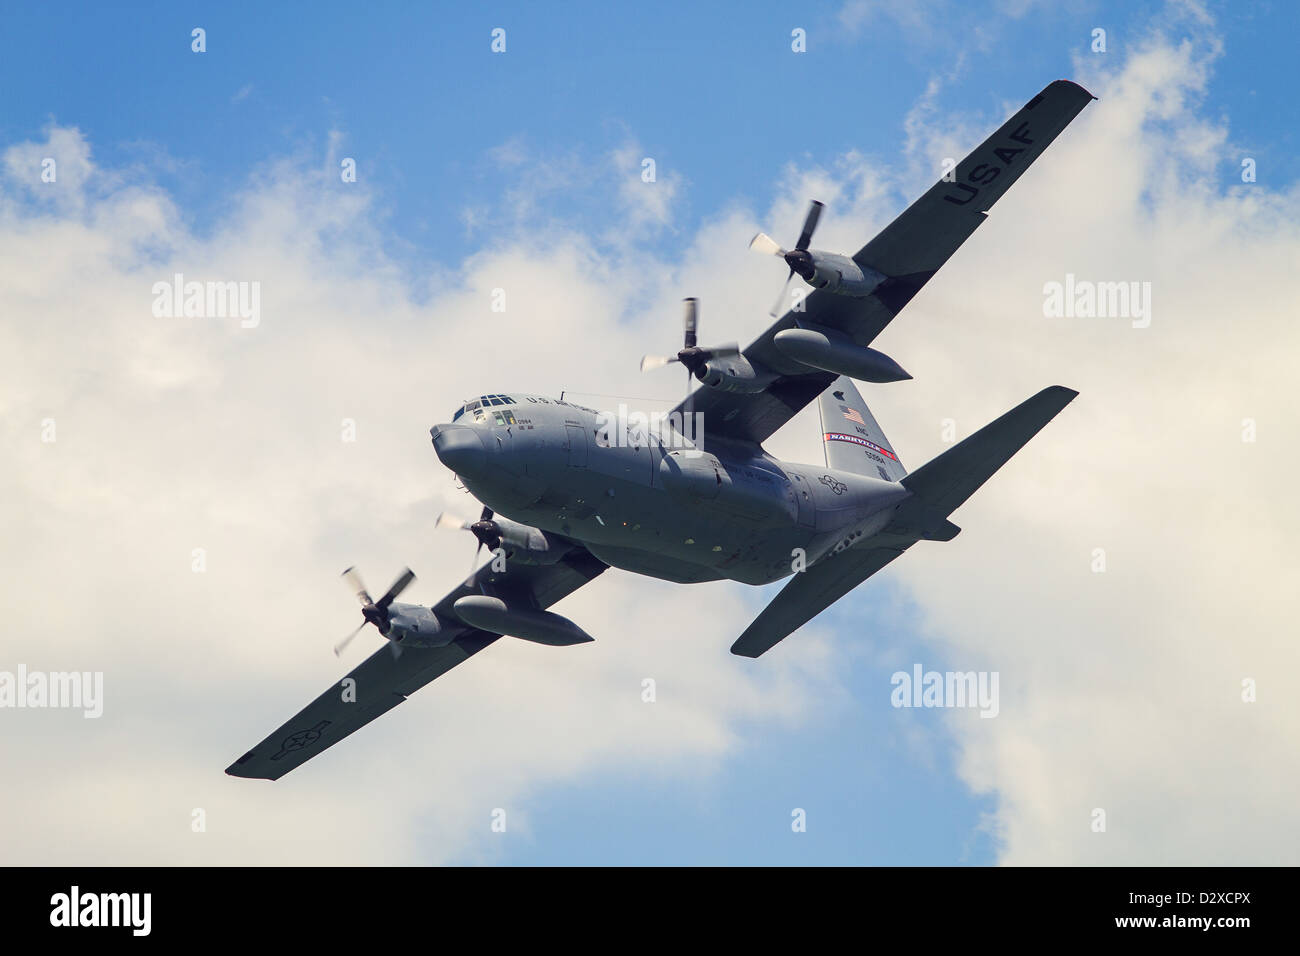 A C130 military plane banks in the sky Stock Photo